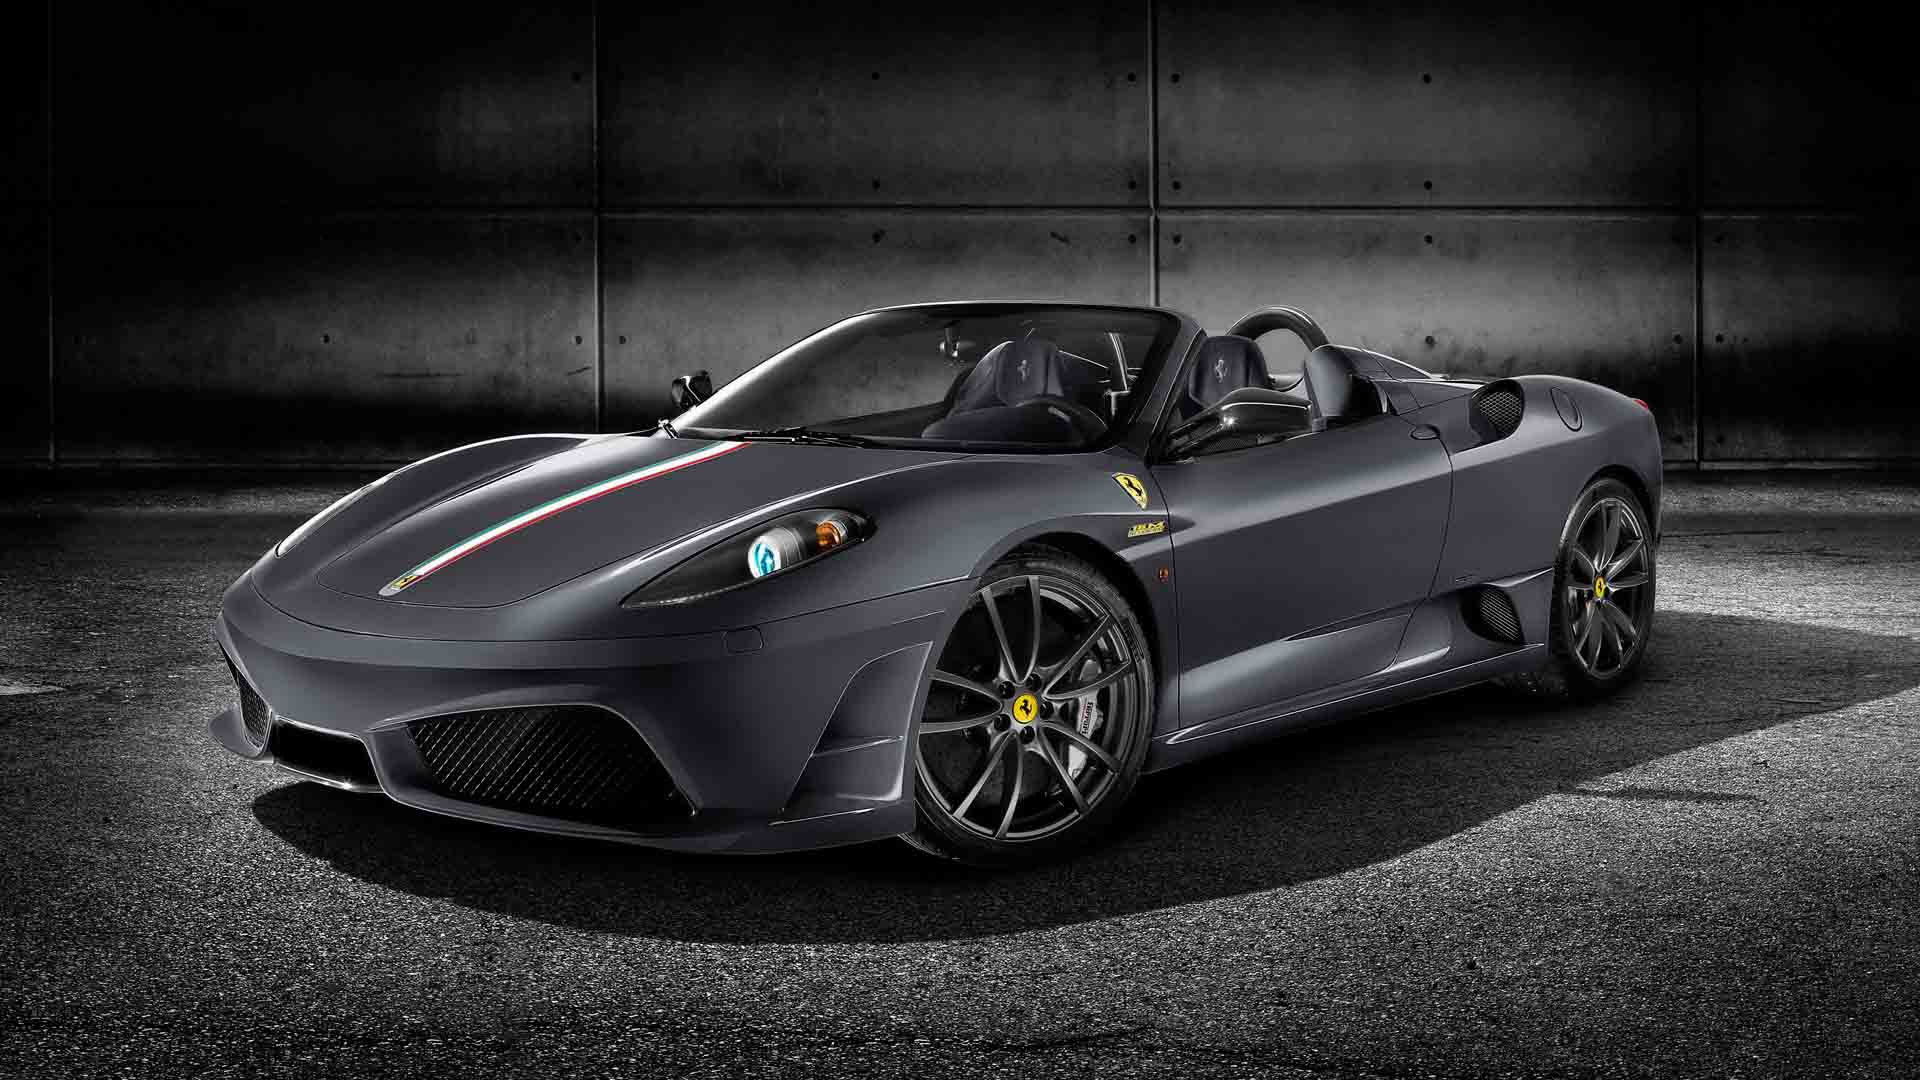 Exotic Car Backgrounds Wallpaper Cave